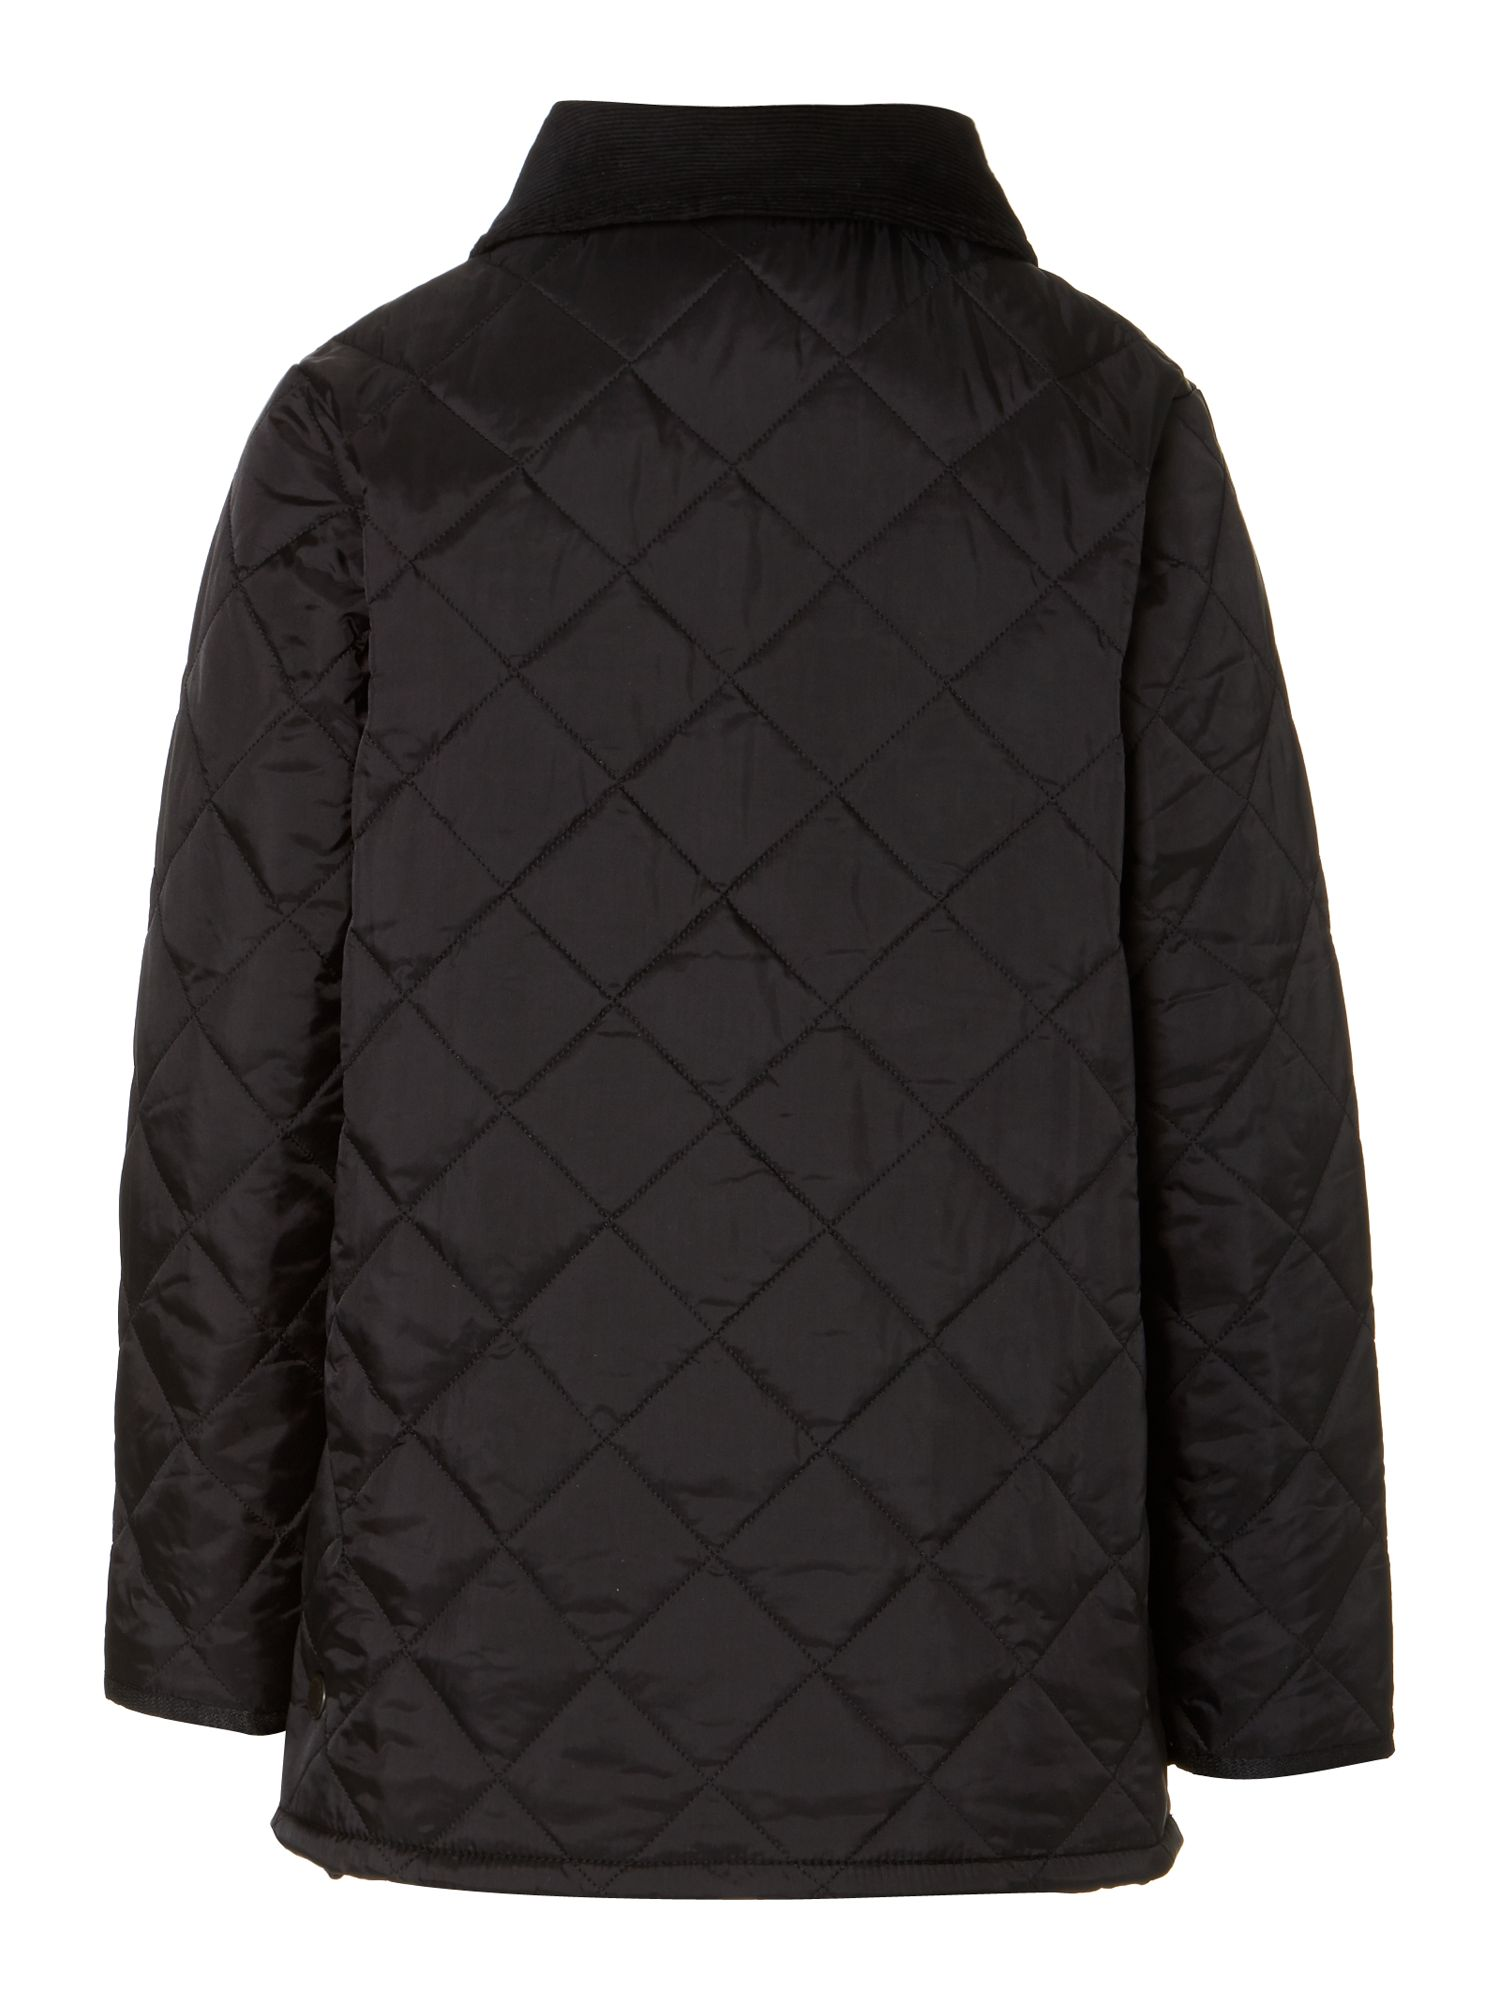 Boy's Liddesdale quilted jacket with cord collar